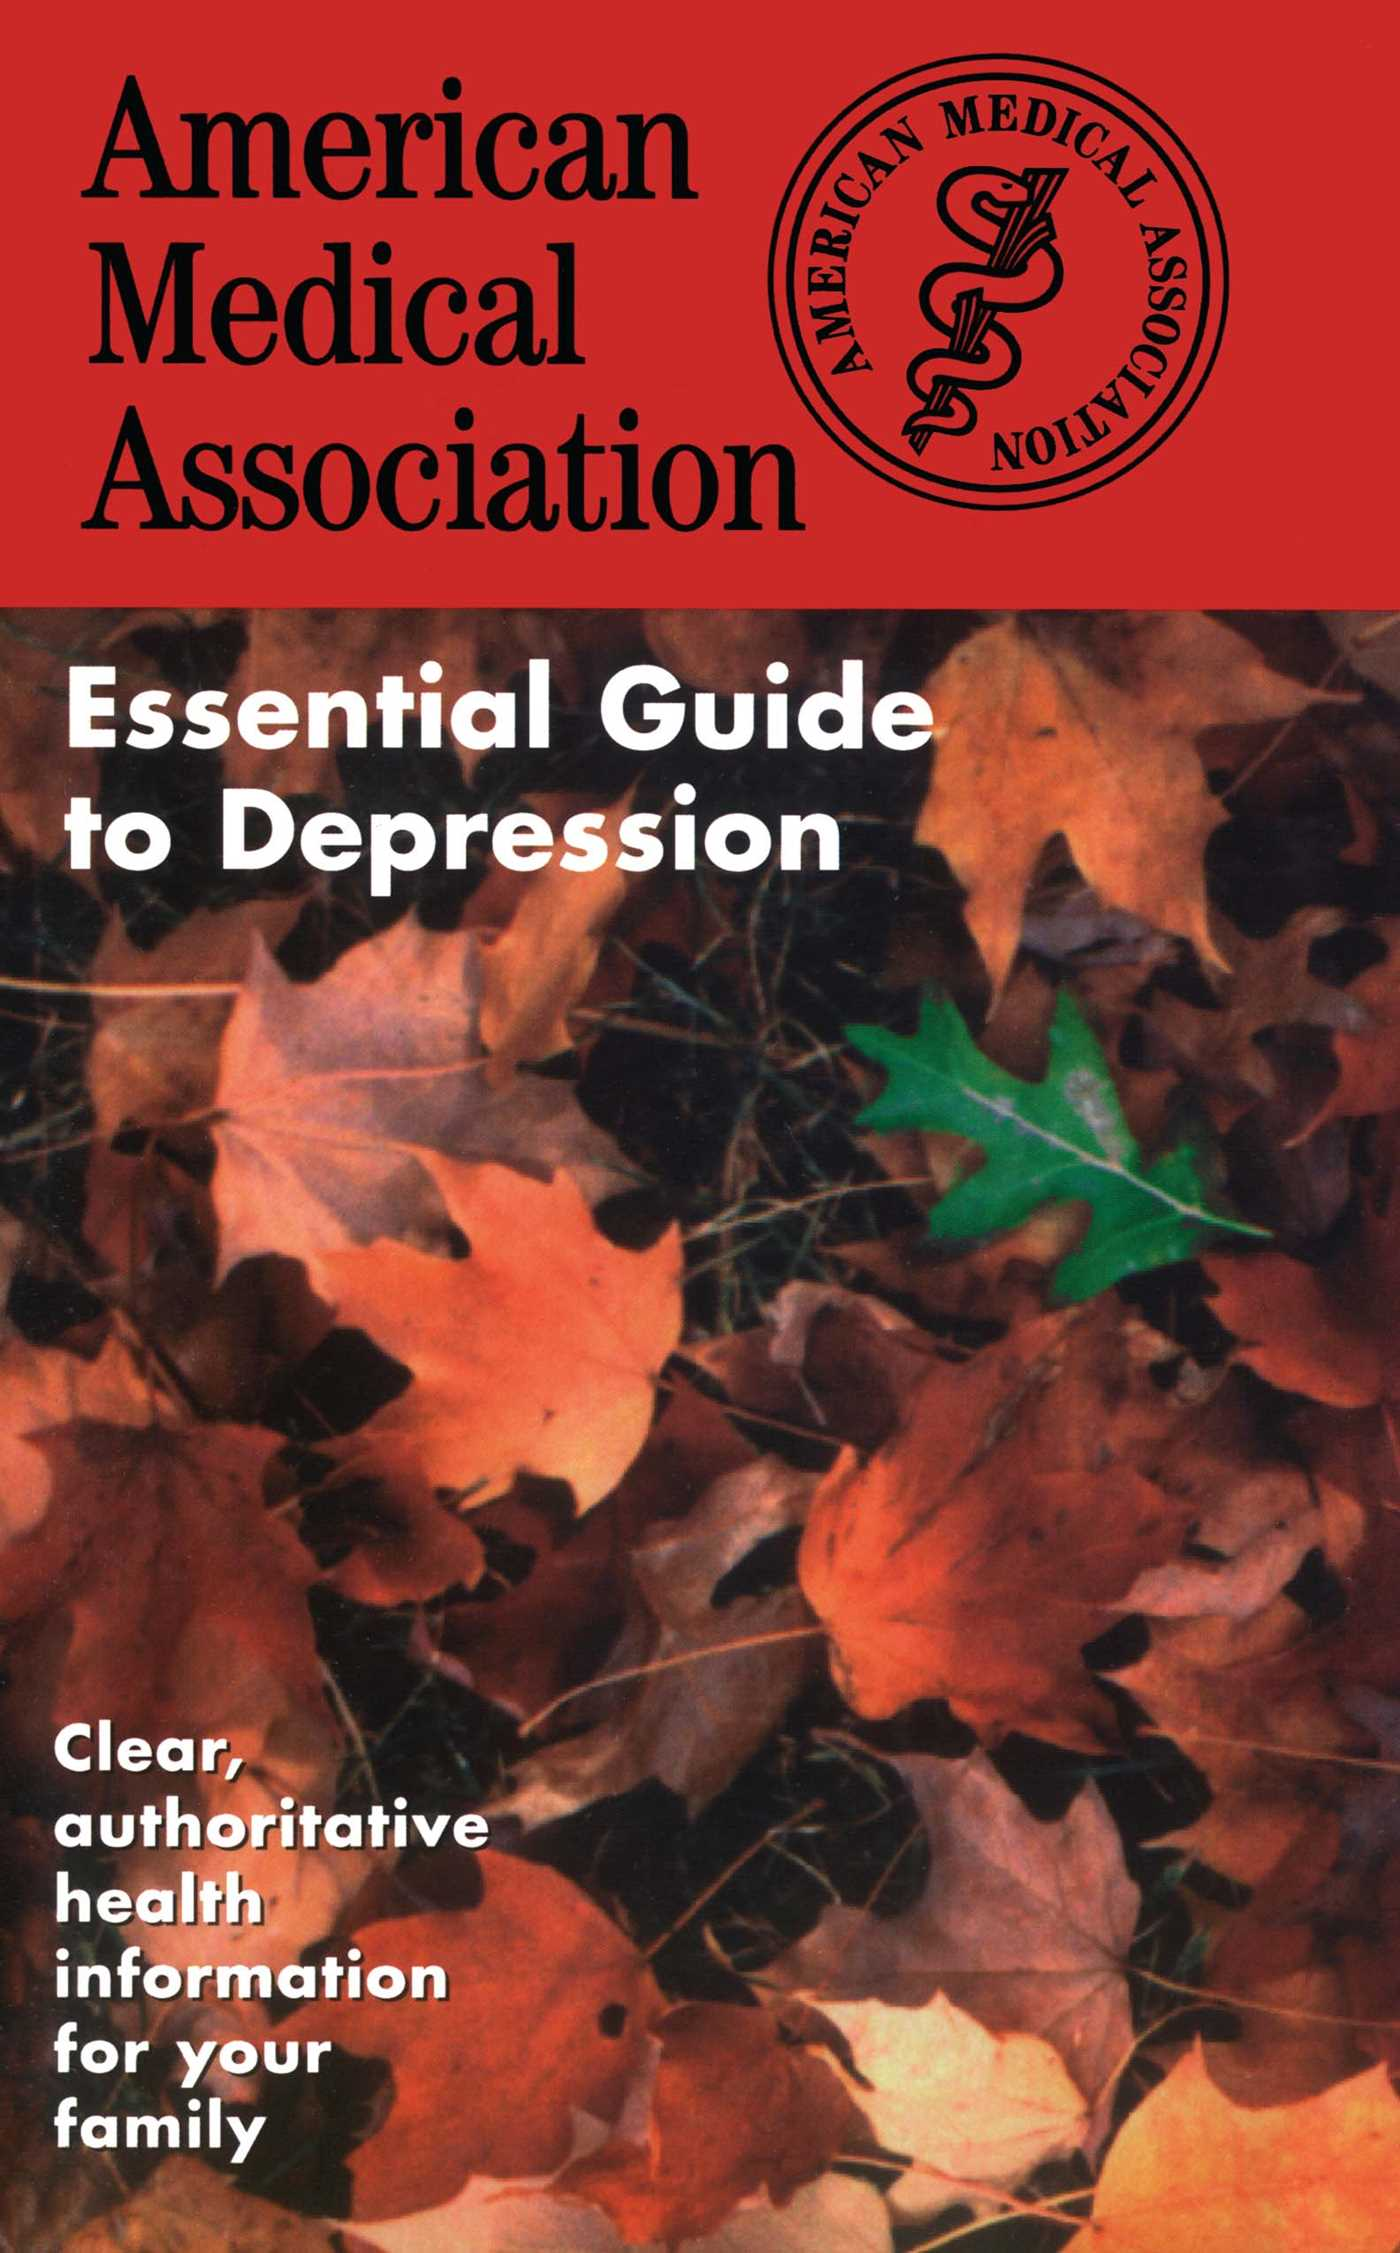 American-medical-association-essential-guide-to-9780671010164_hr